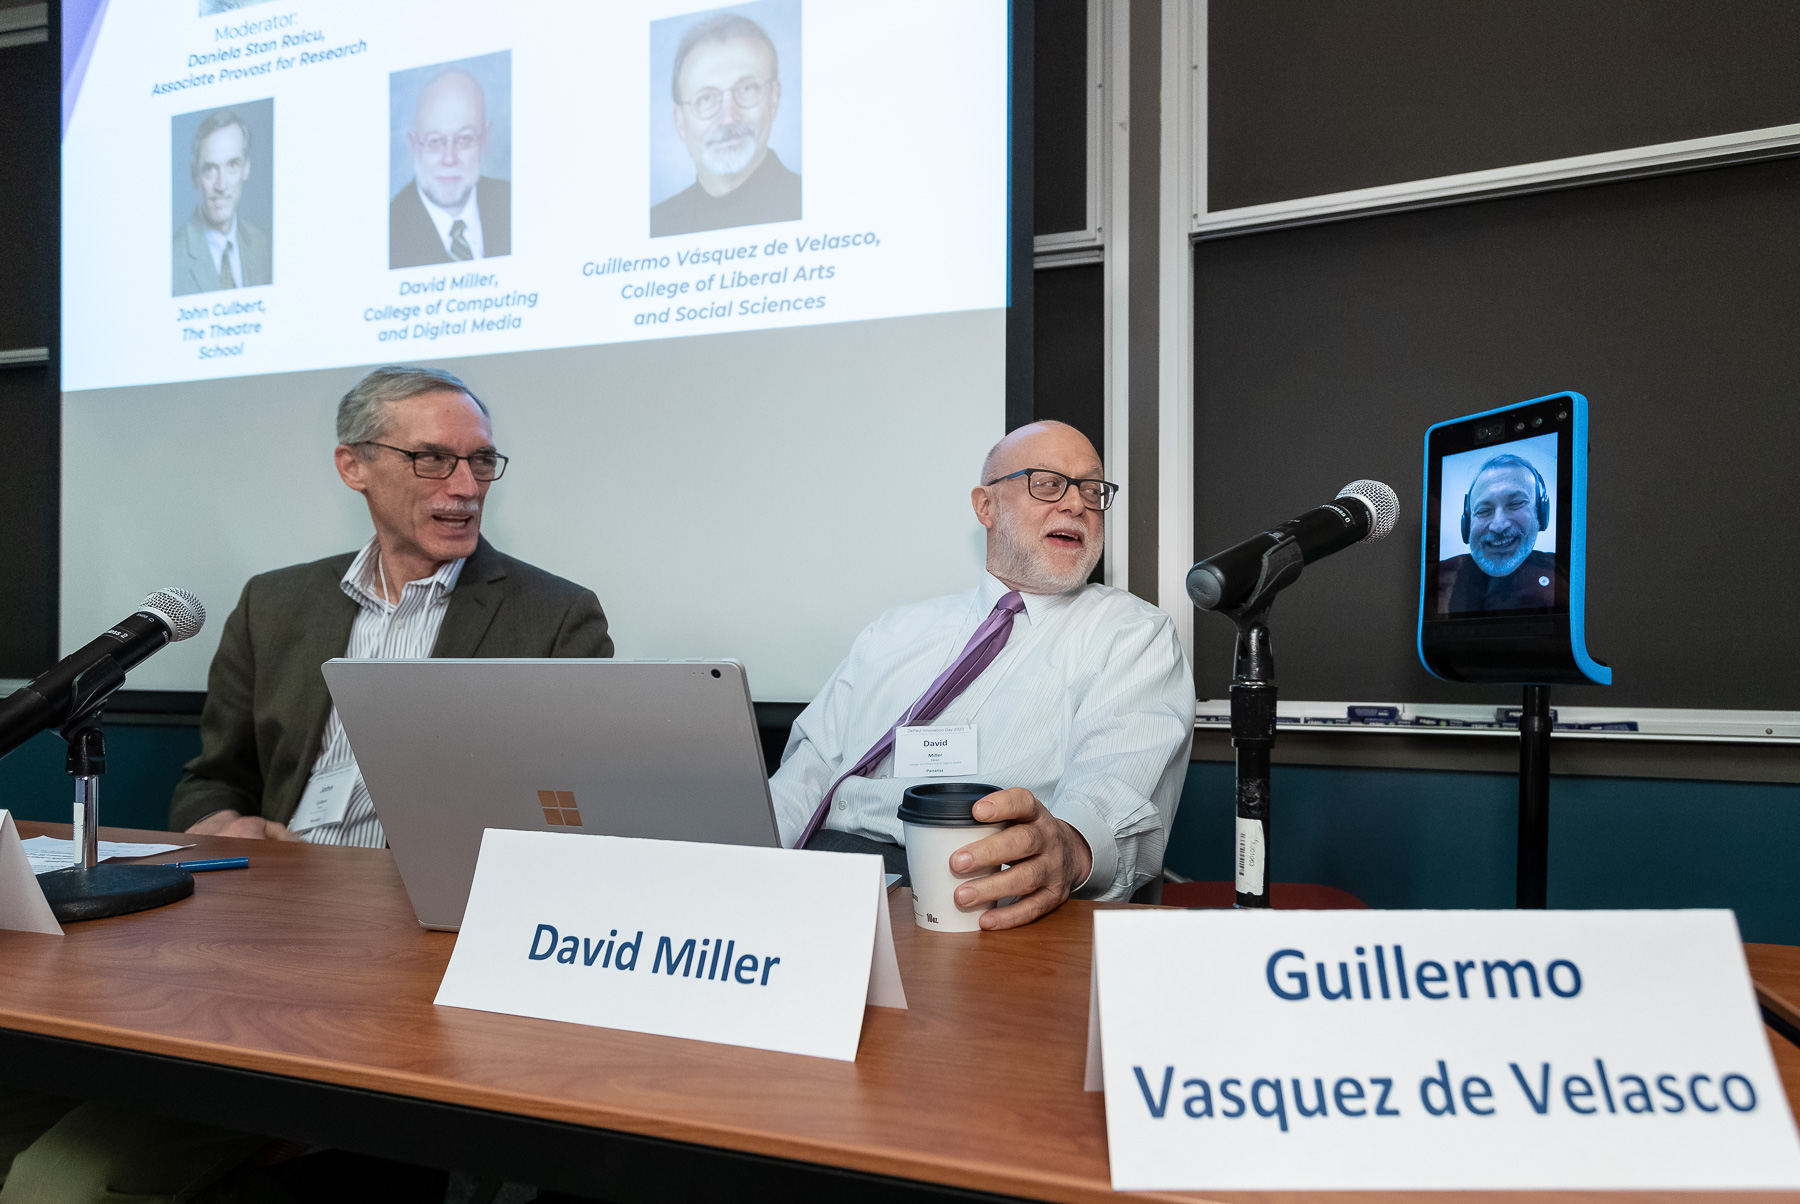 John Culbert, dean of The Theatre School, left, and David Miller, dean of the College of Computing and Digital Media, center, hosted a panel discussion along with Guillermo Vásquez de Velasco, dean of the College of Liberal Arts and Social Sciences, who participated via a telepresence robot. (DePaul University/Jeff Carrion)